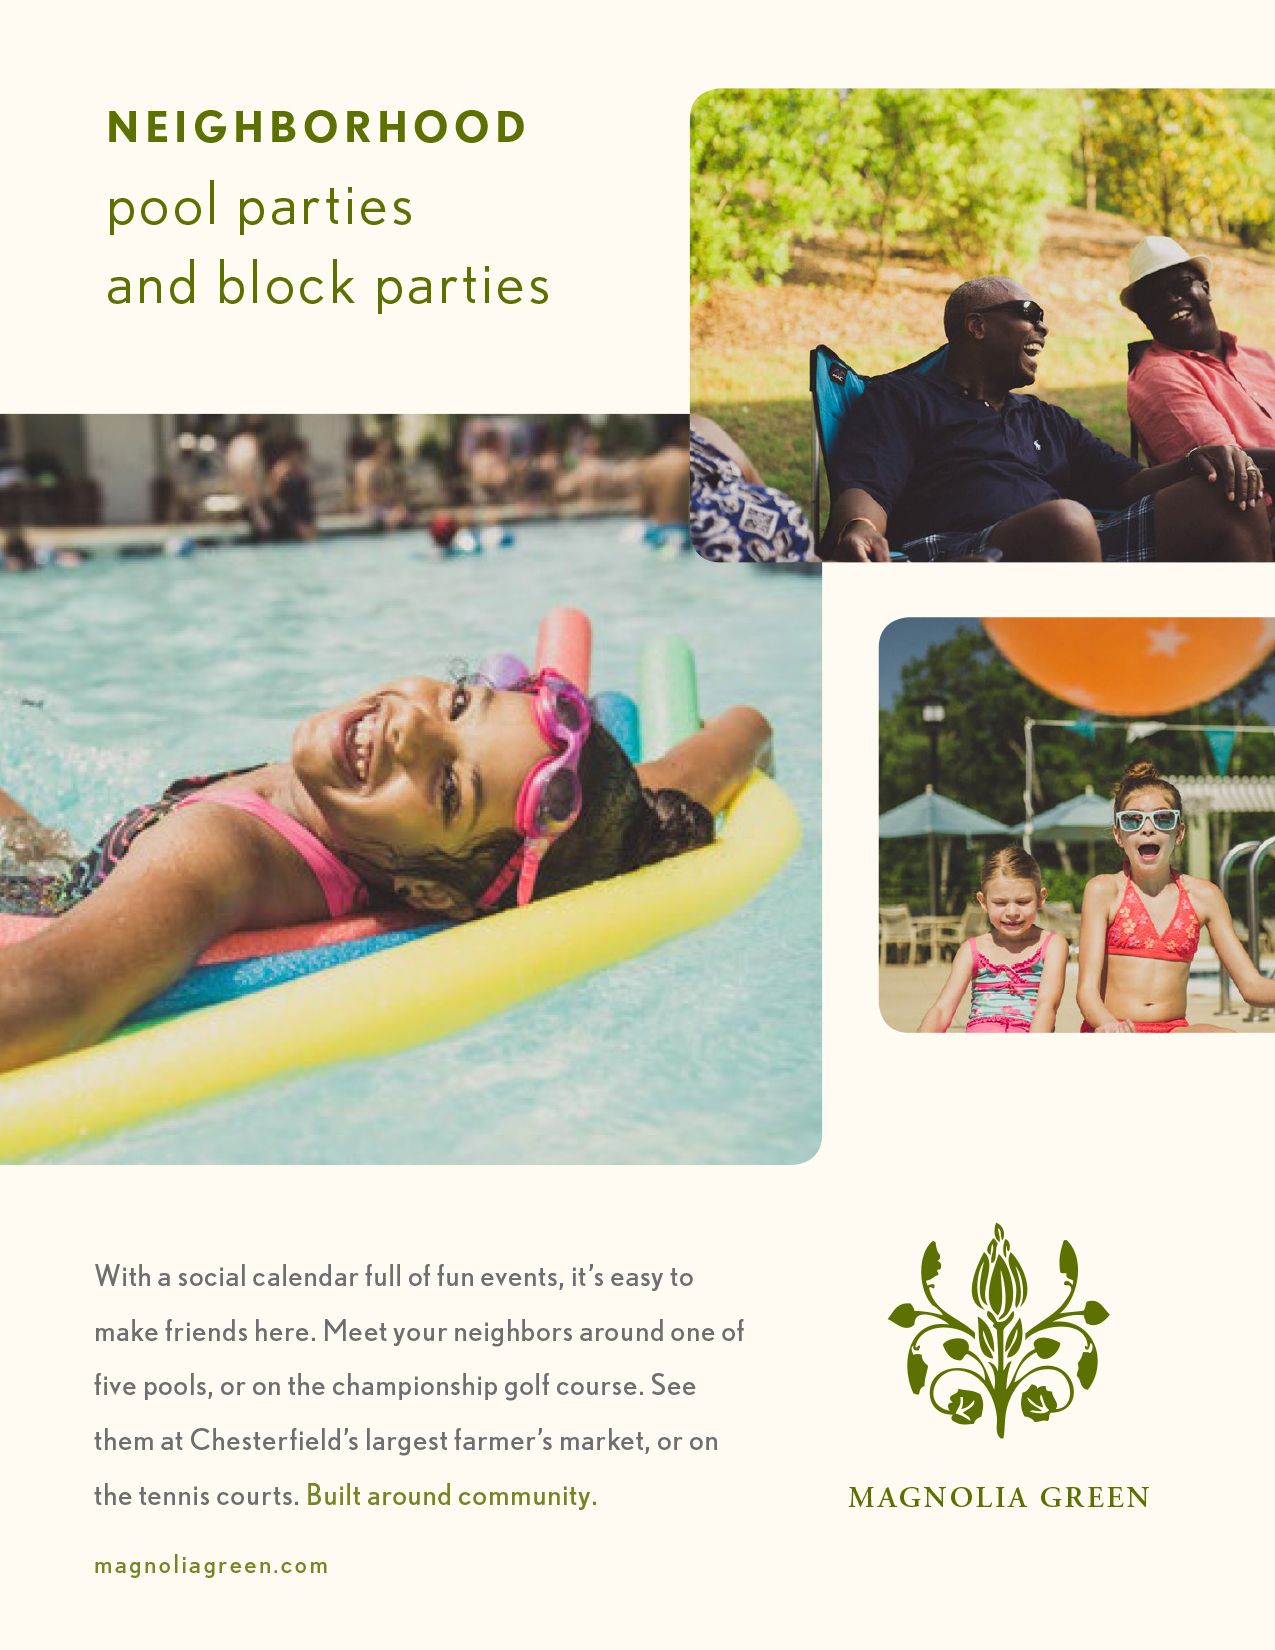 Neighborhood pool parties and block parties - With a social calendar full of fun events, it's easy to make friends here. Meet your neighbors around one of five pools, or on the championship golf course. See them at Chesterfield's largest farmer's market, or on the tennis courts. Built around community.